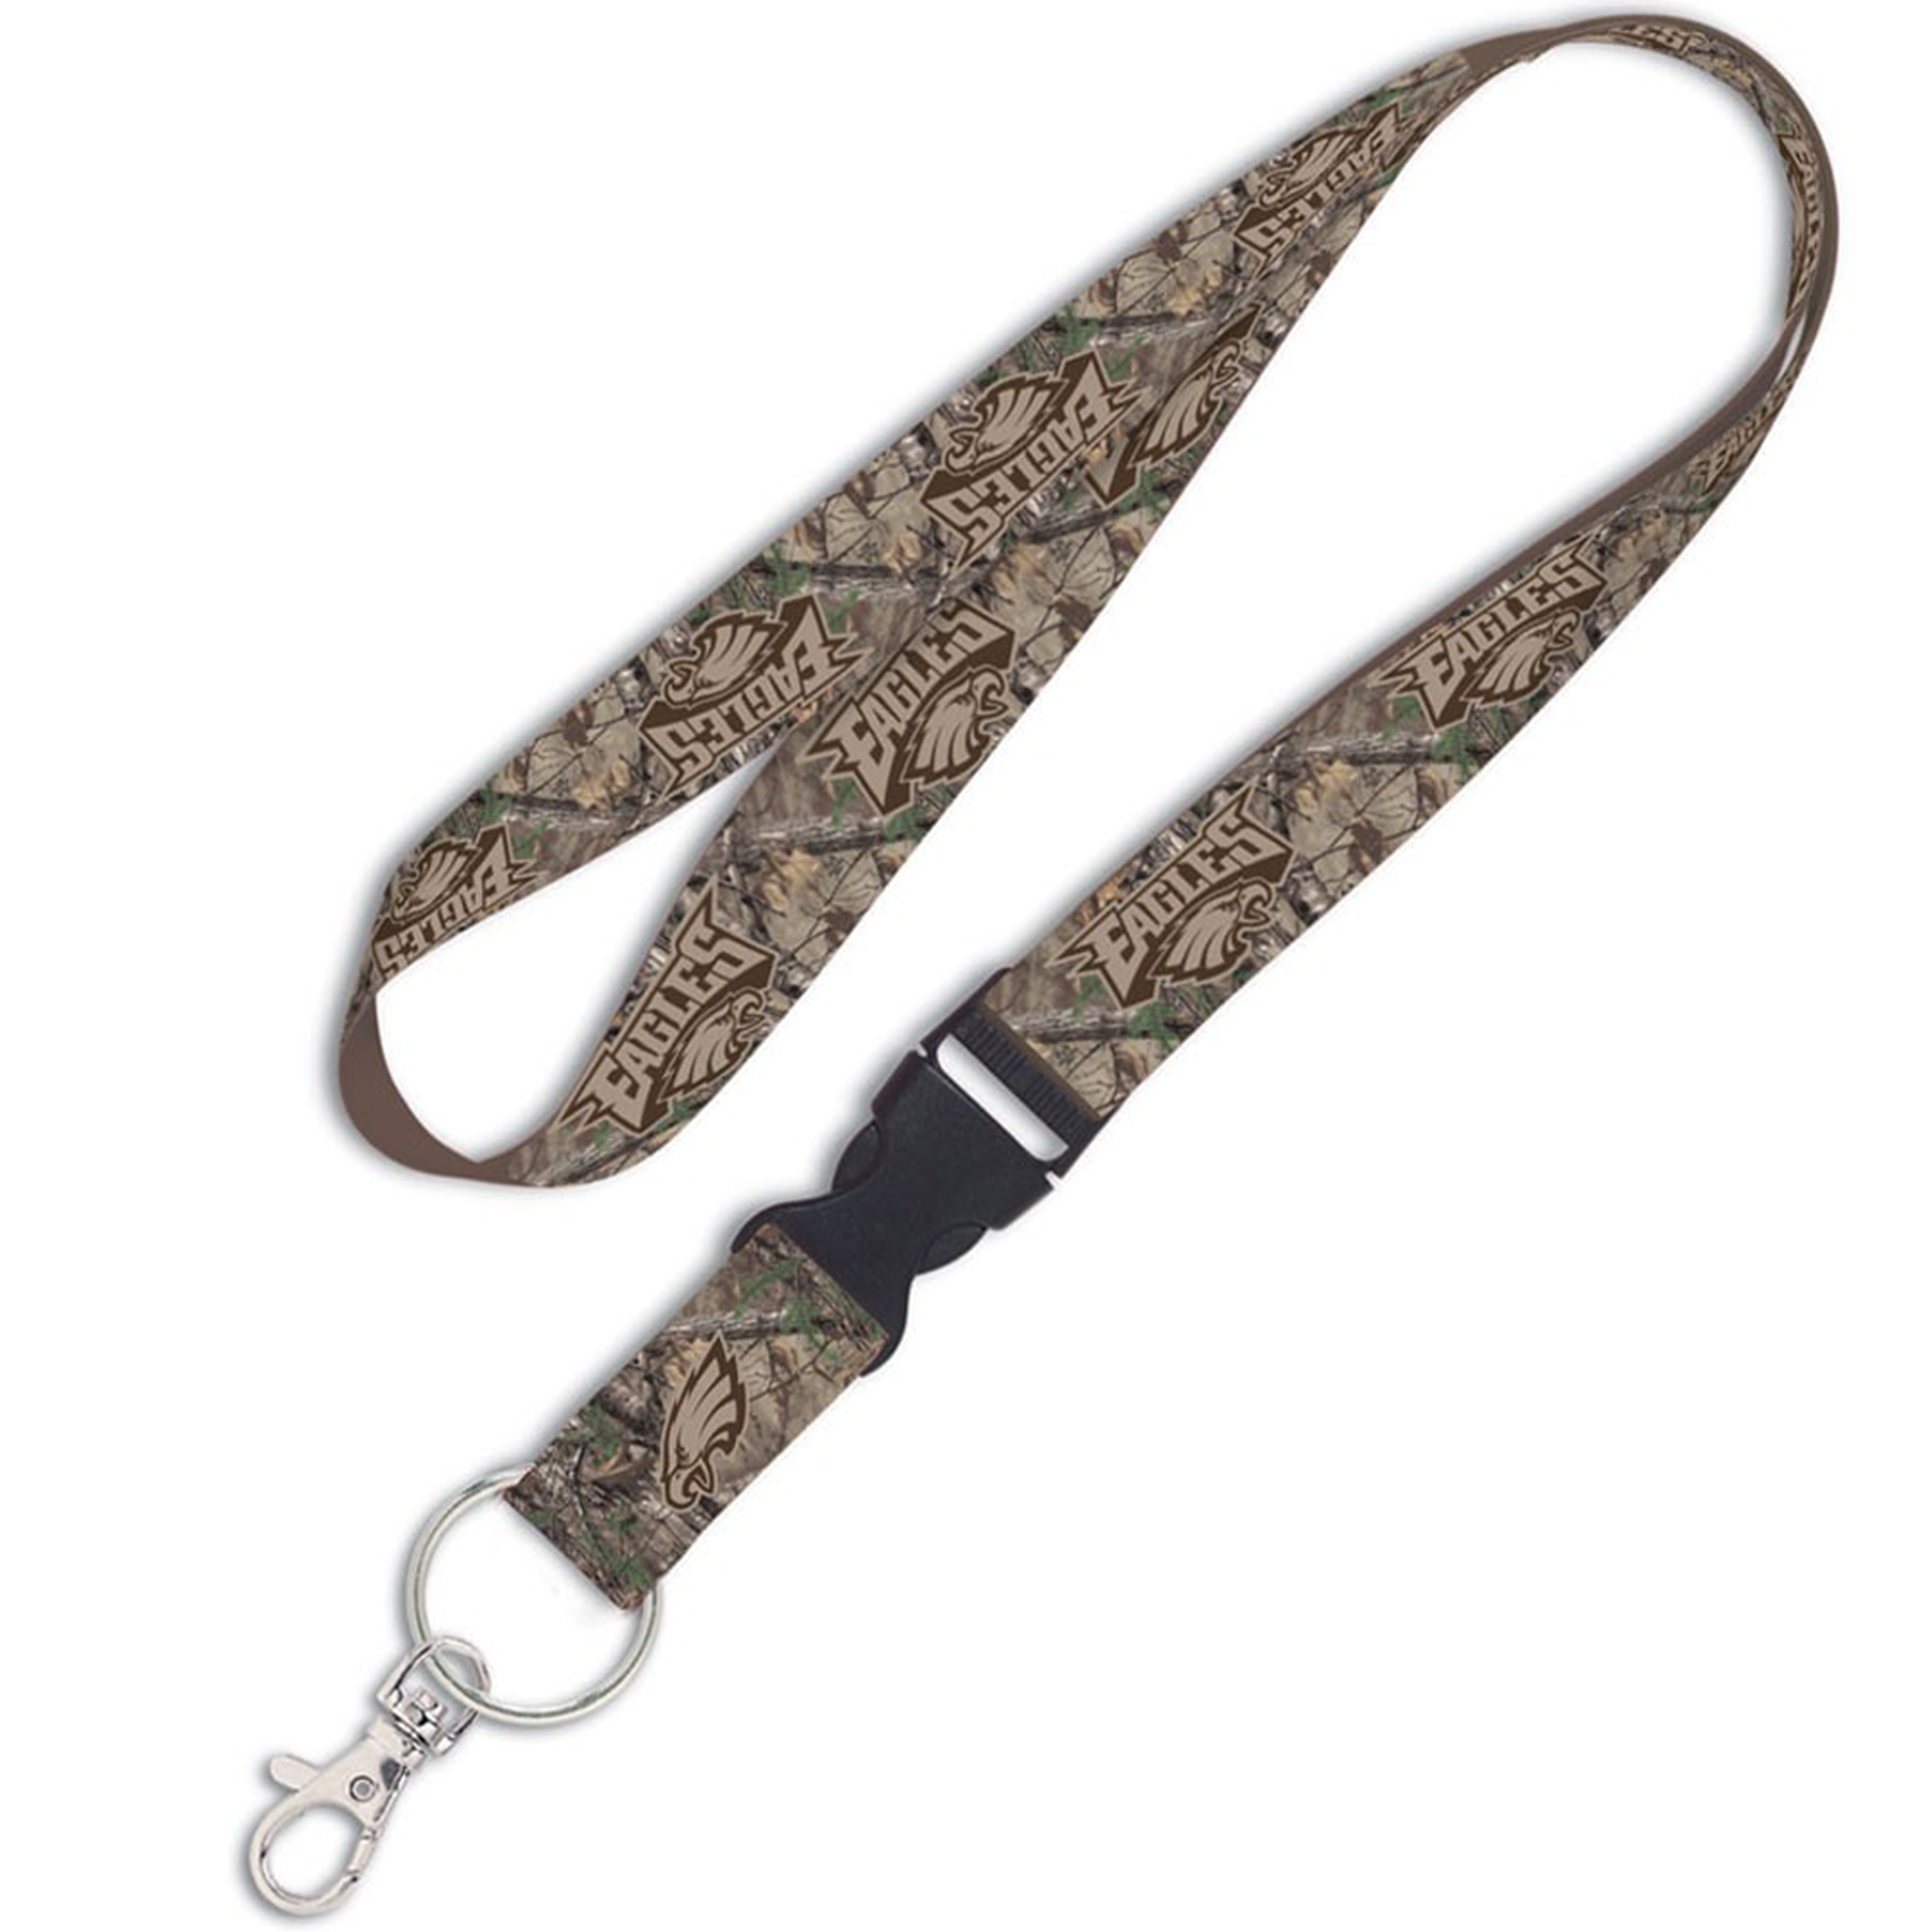 Philadelphia Eagles WinCraft Camo Lanyard with Detachable Buckle - No Size